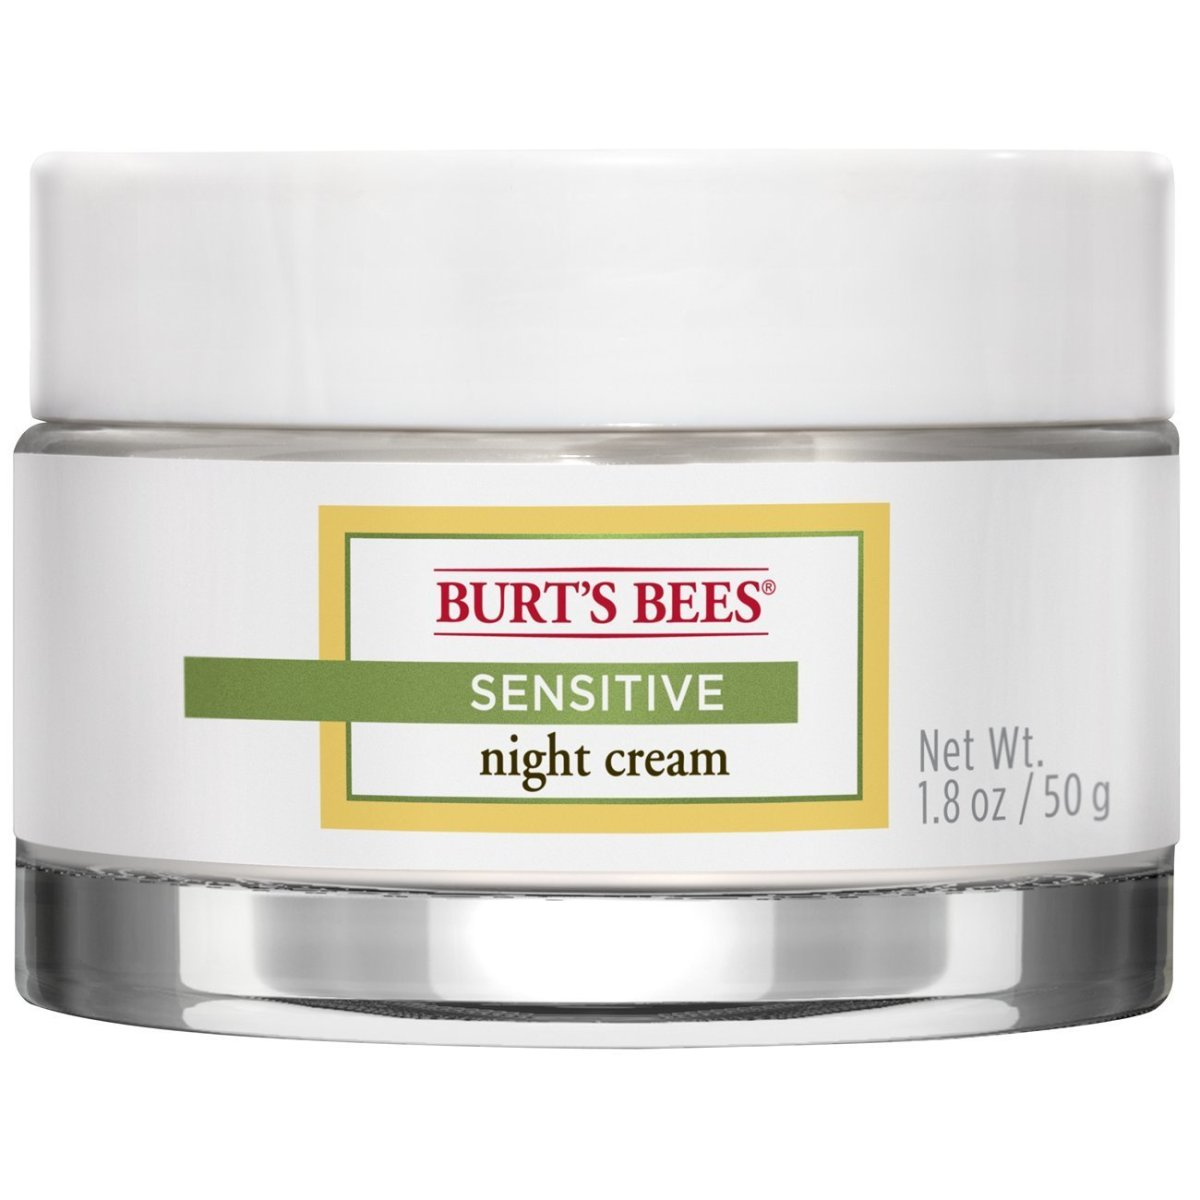 Burt's Bees regimen takes on the Cetaphil skincare range